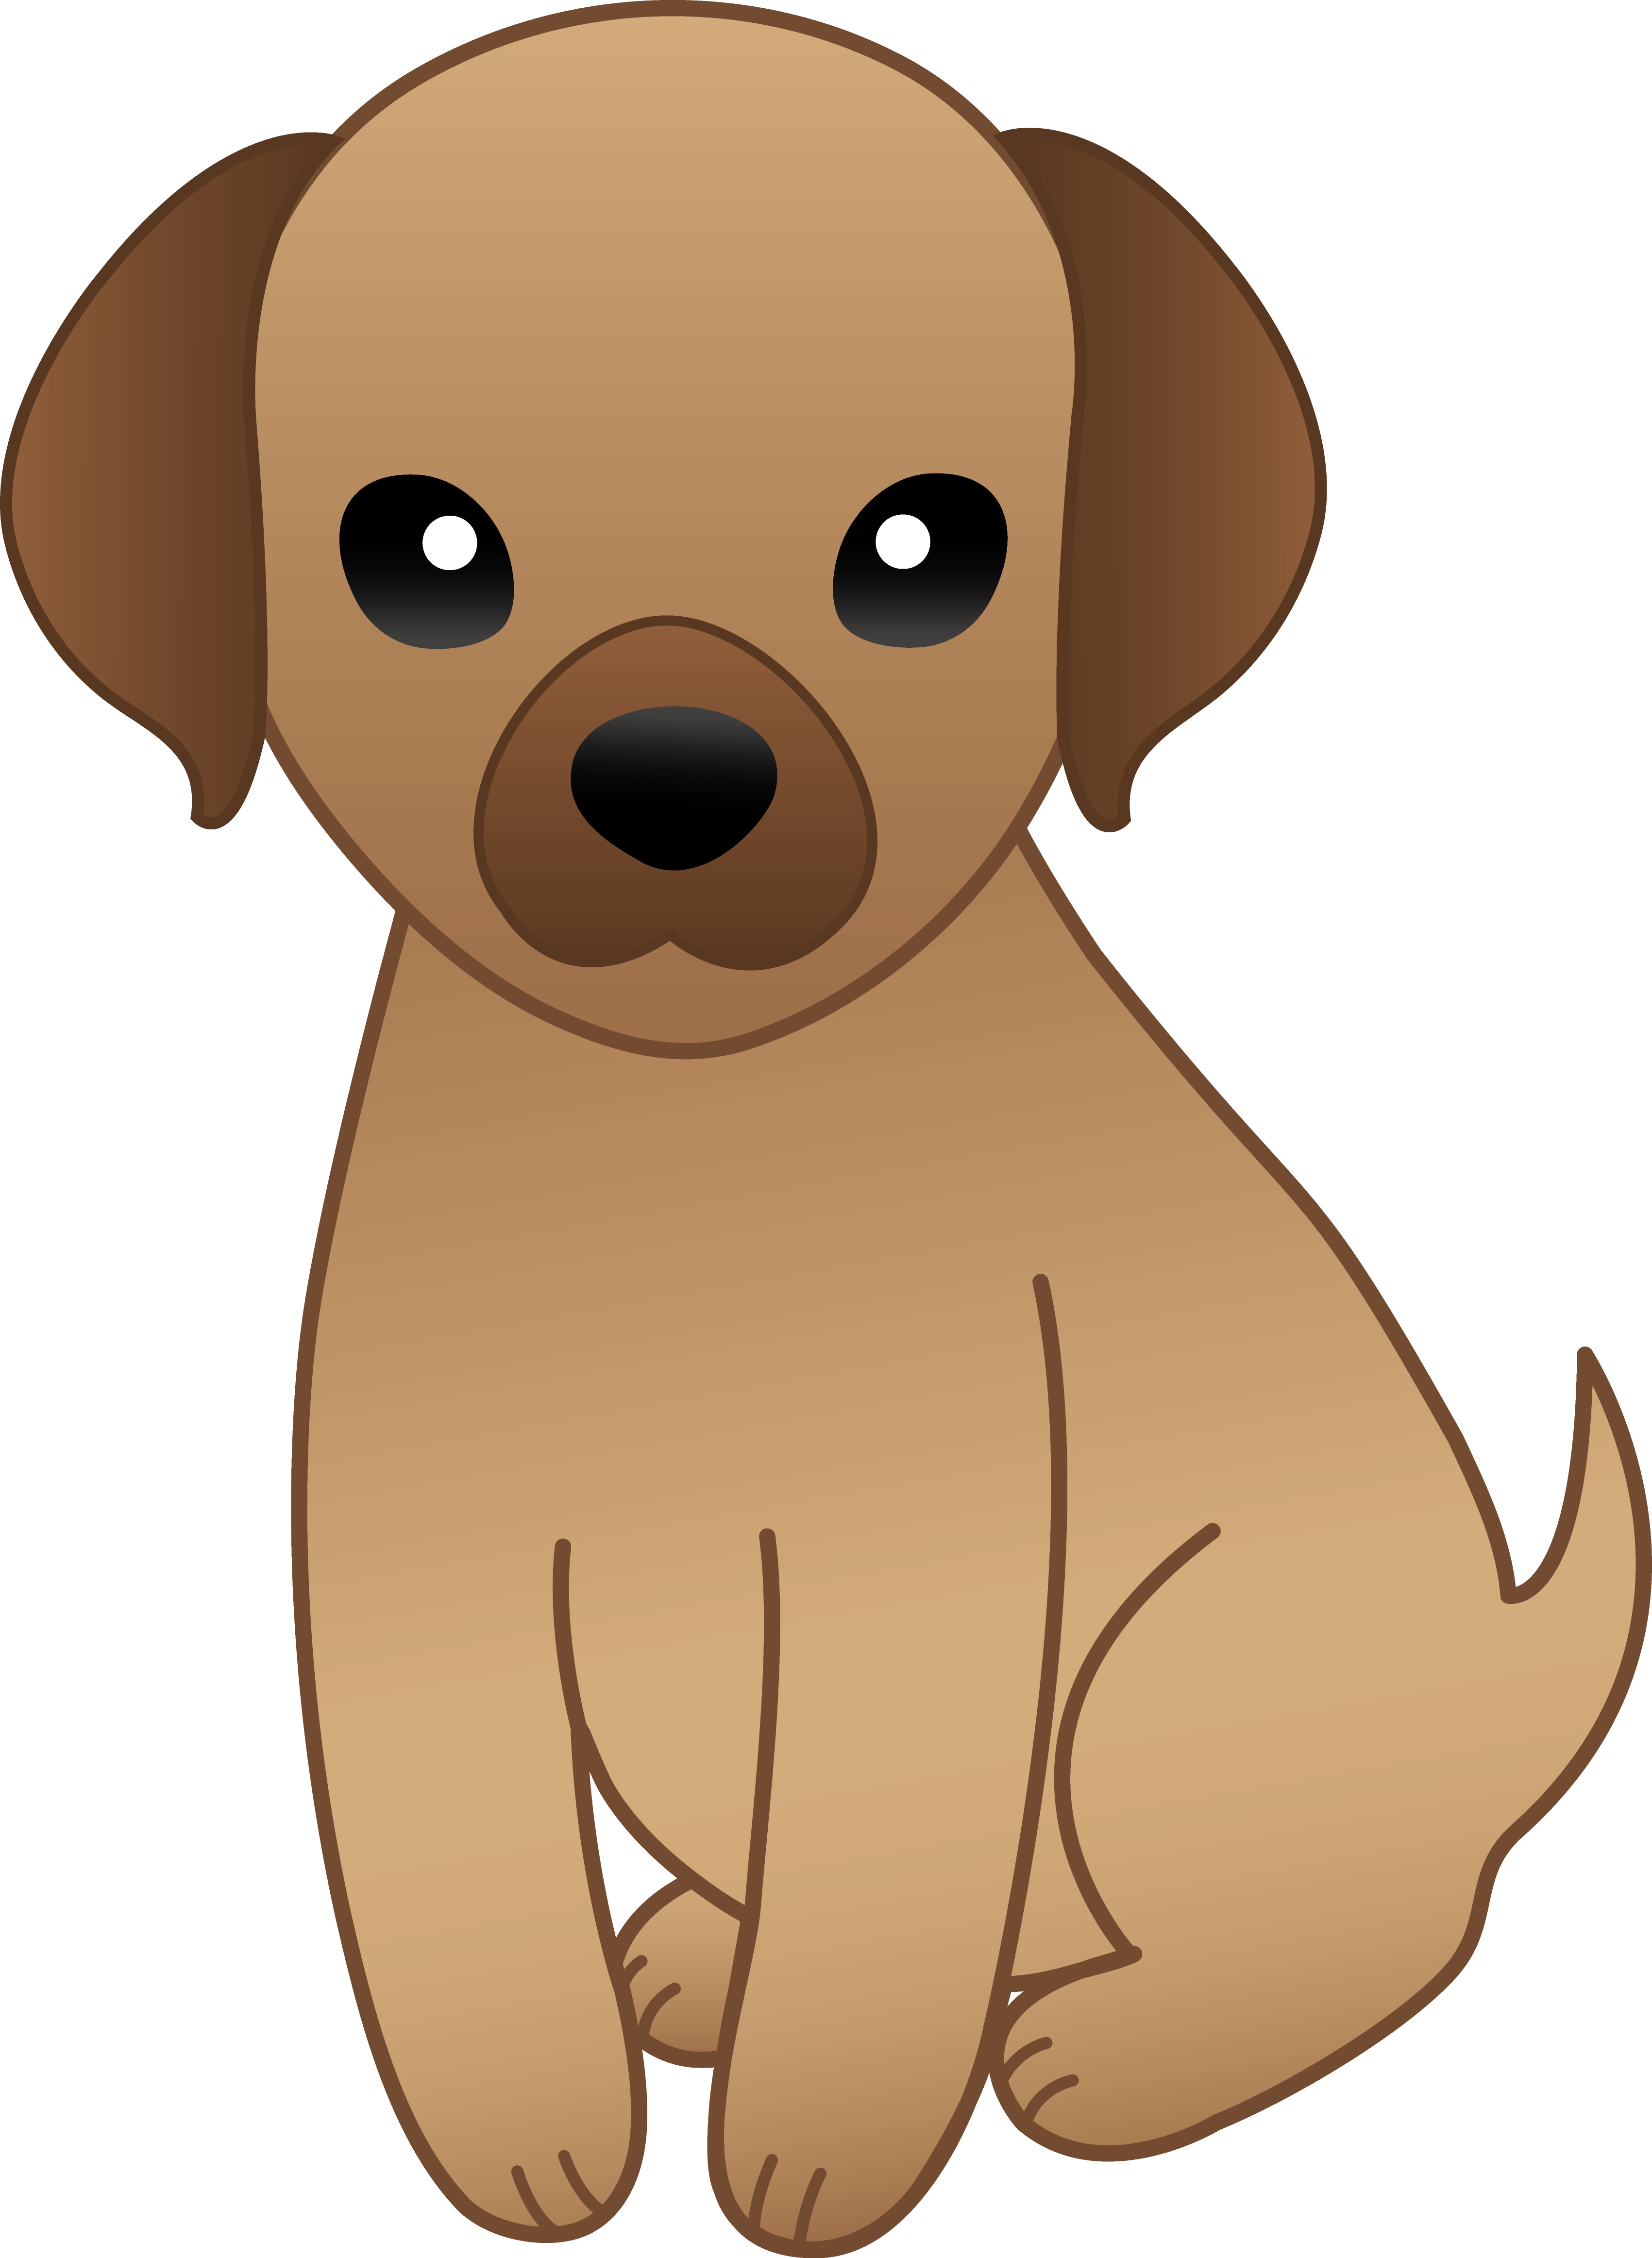 Small dog clipart image library stock Small dog clipart - ClipartFest image library stock